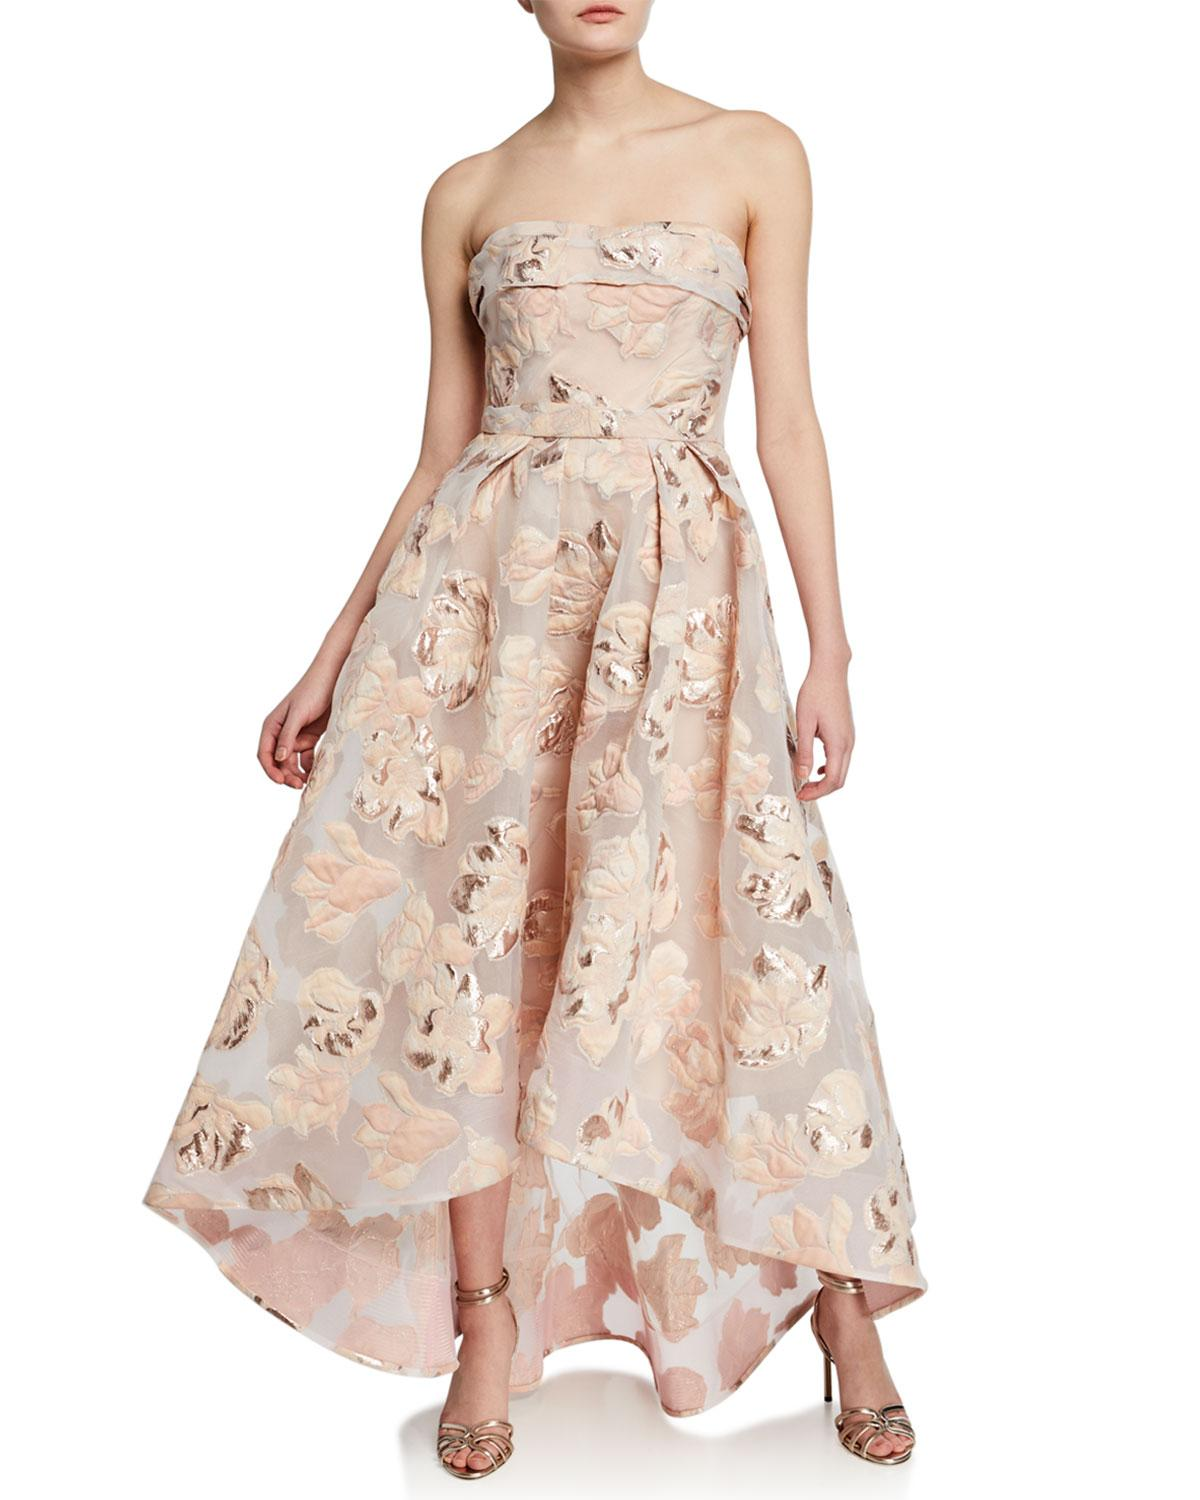 bc585c7d Marchesa notte Strapless Metallic Fil Coupe High-low Gown in Pink - Lyst